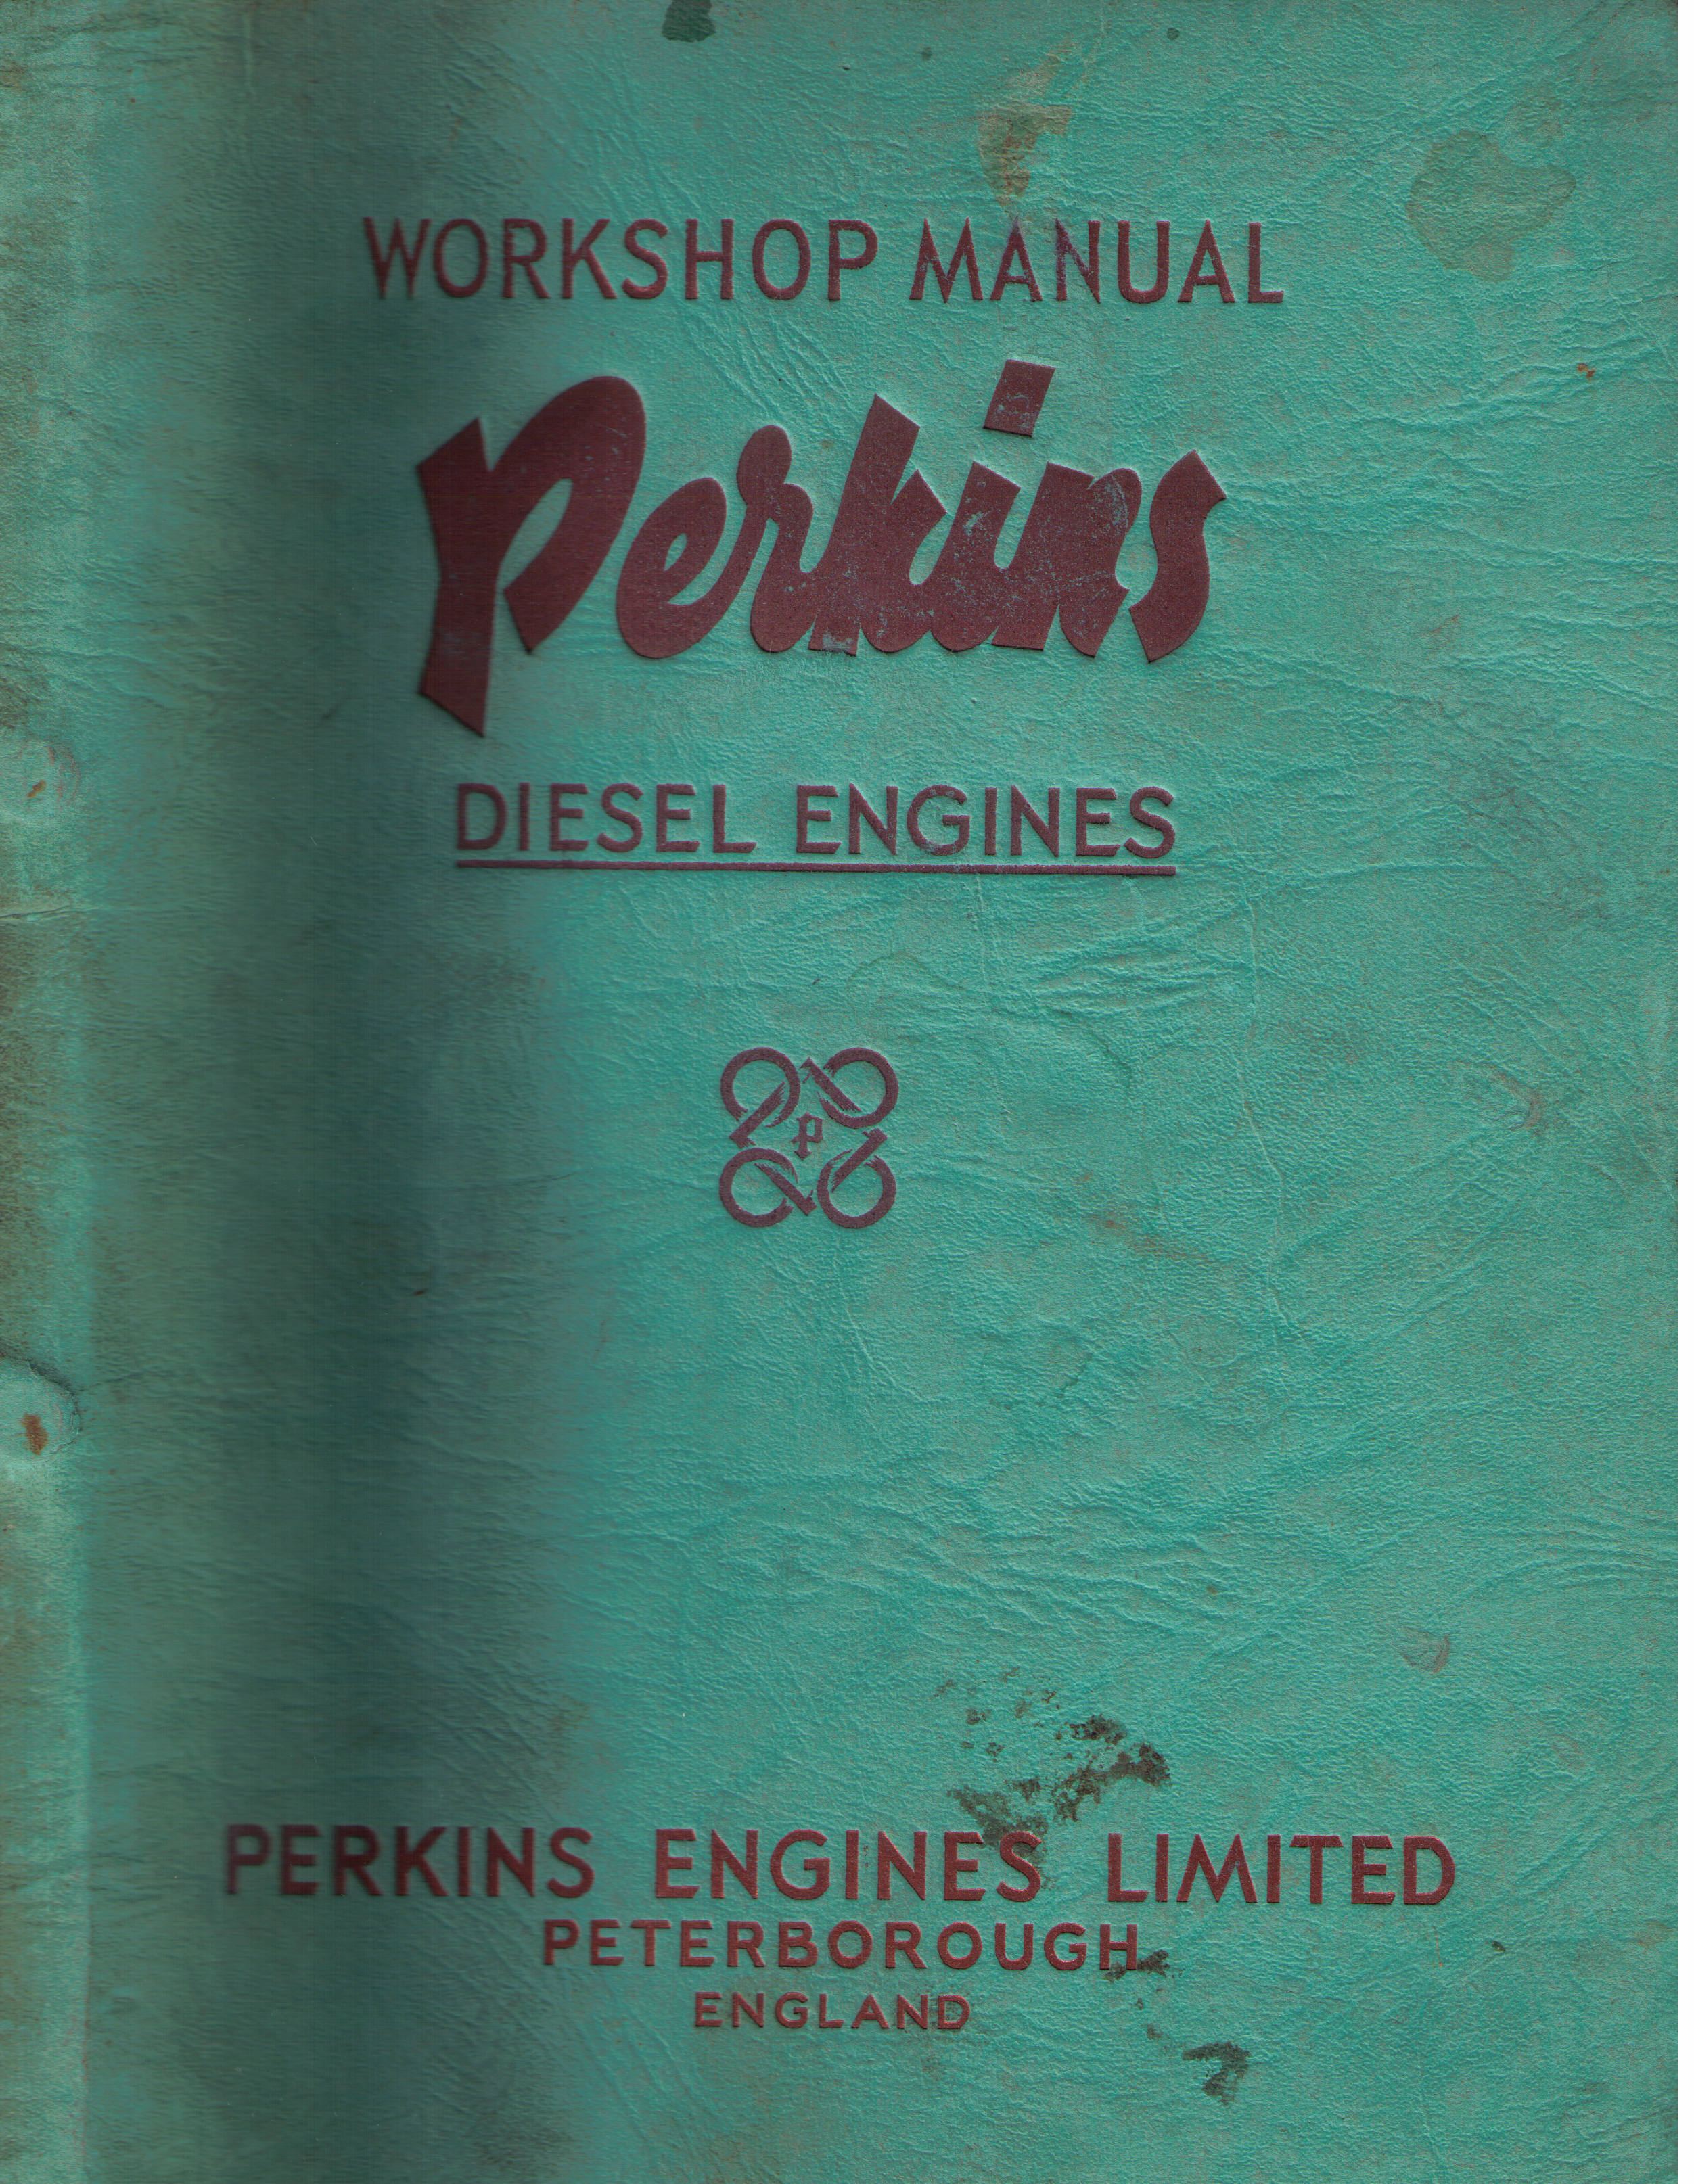 Perkins p4 manual array workshop manual perkins diesel engine jeep willys world rh jeepwillysworld com fandeluxe Images